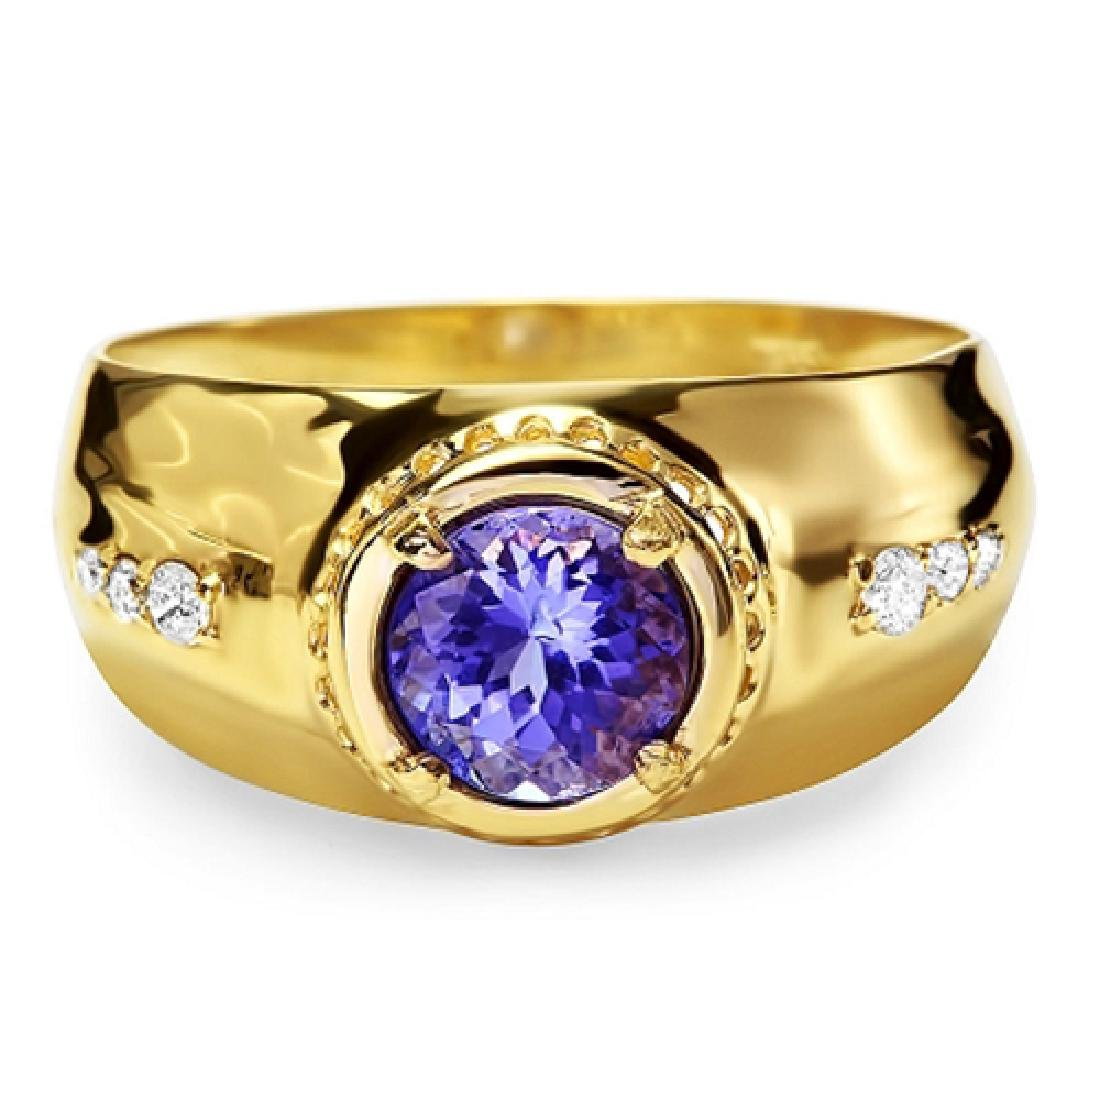 1.47 Carat Natural Tanzanite 18K Solid Yellow Gold